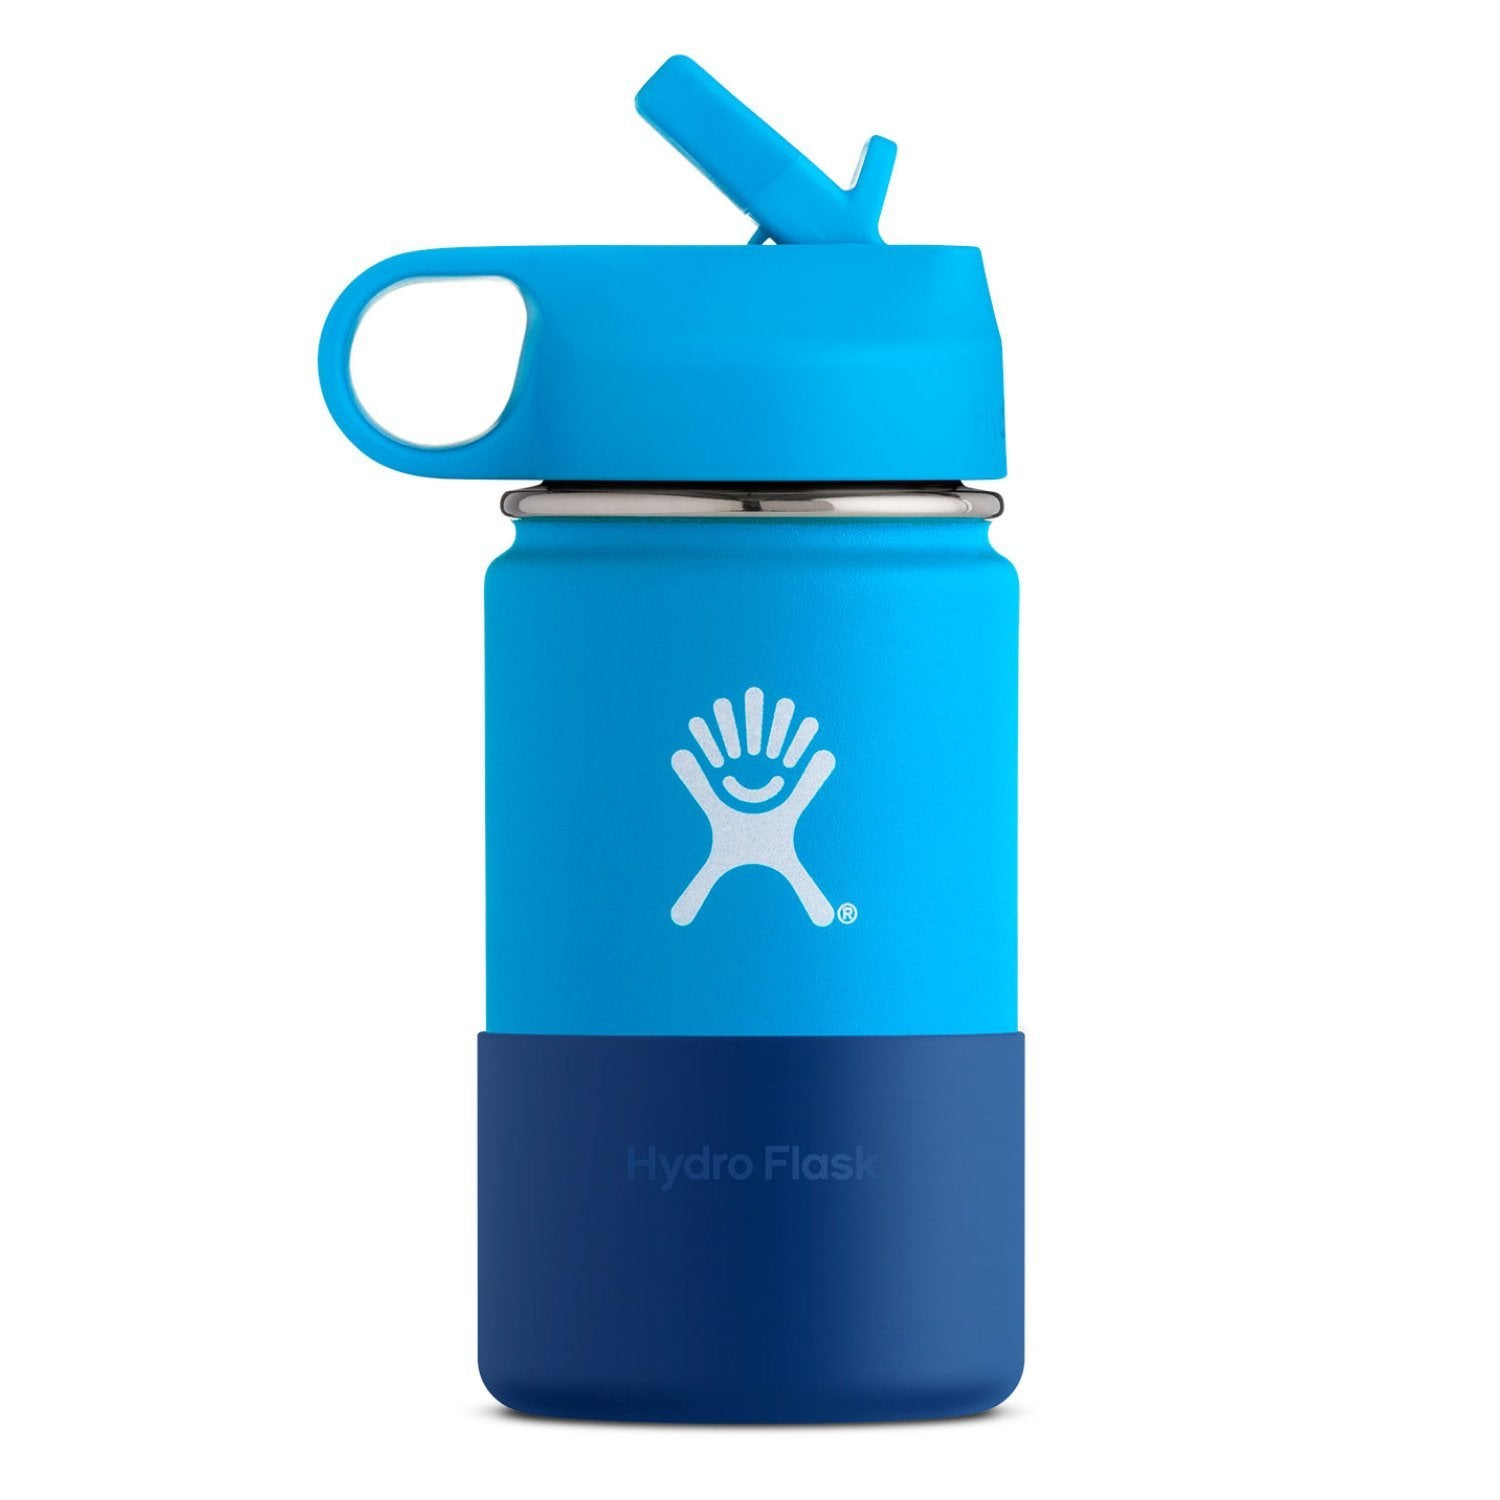 Hydro Flask Kids Insulated Drink Bottle 355ml Hydro Flask Water Bottles Pacific at Little Earth Nest Eco Shop